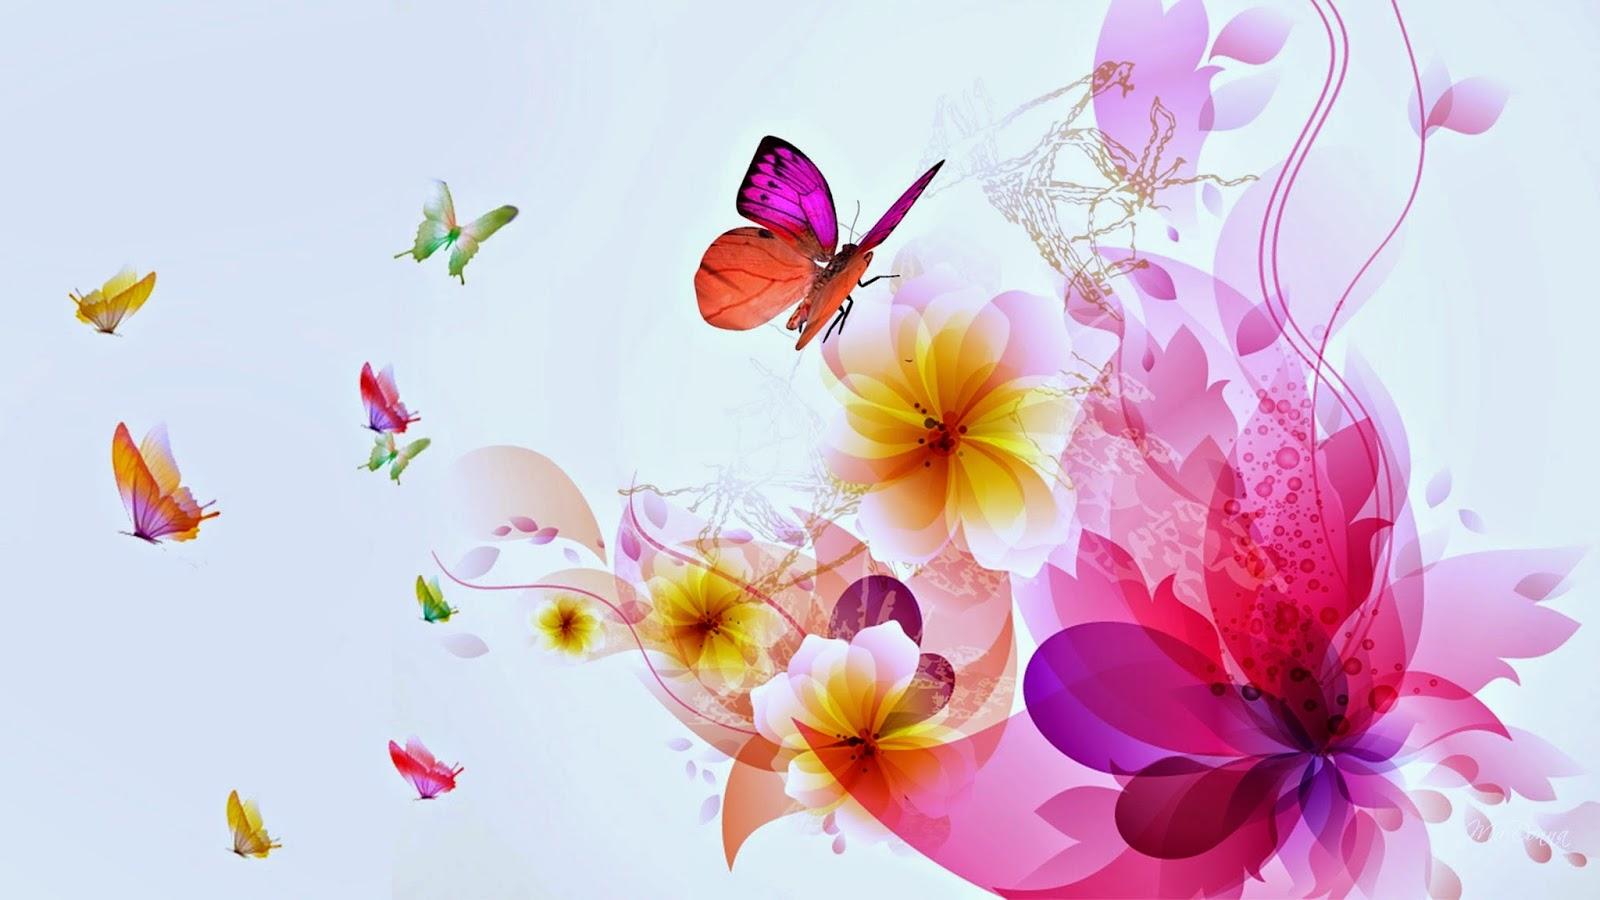 Butterfly designs background for desktop Abstract HD wallpapers